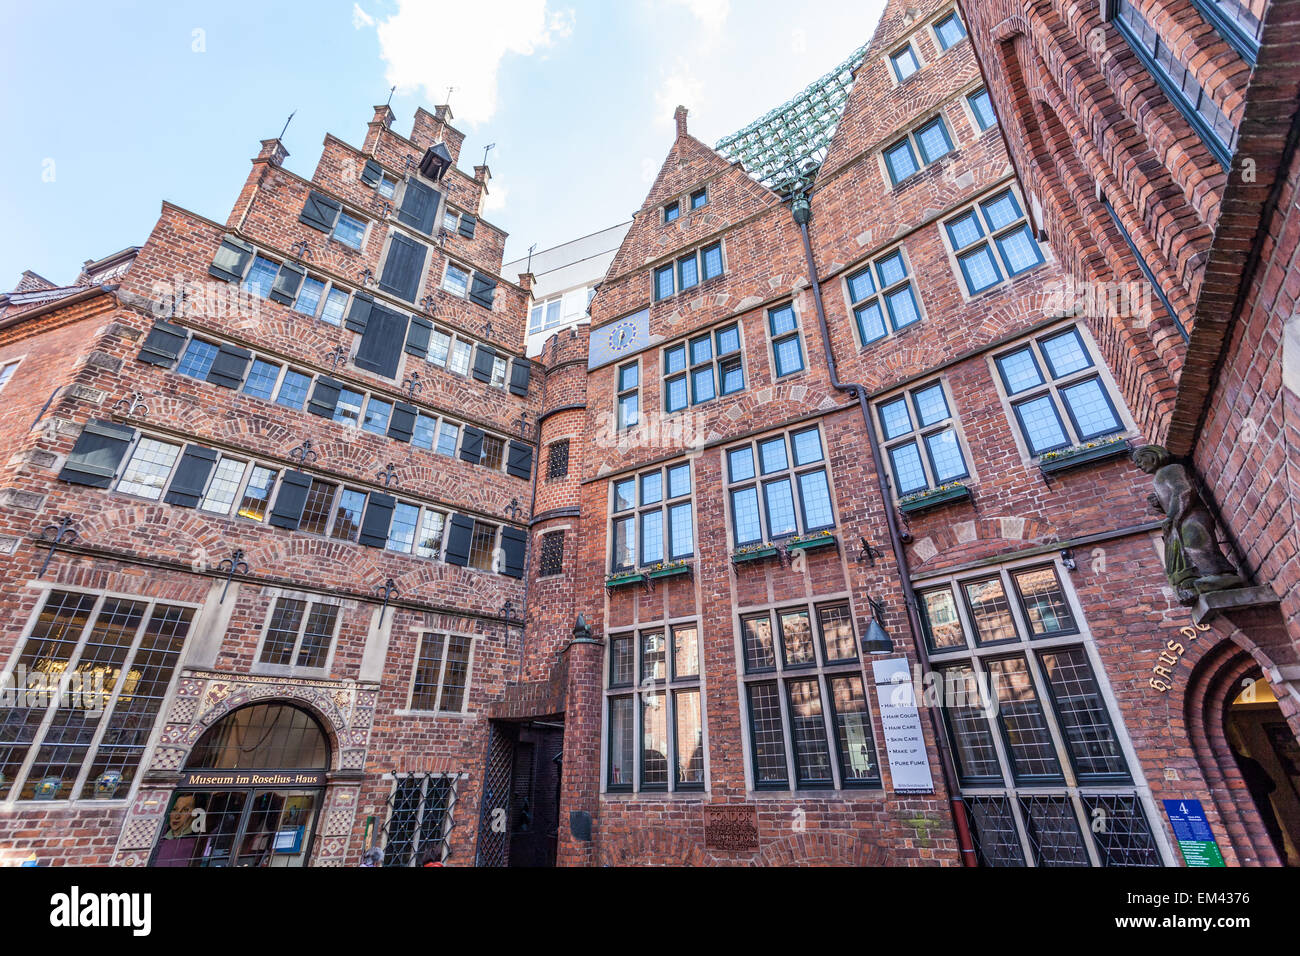 Brick buildings in historic Boettcher Street in the old town in Bremen, Germany - Stock Image